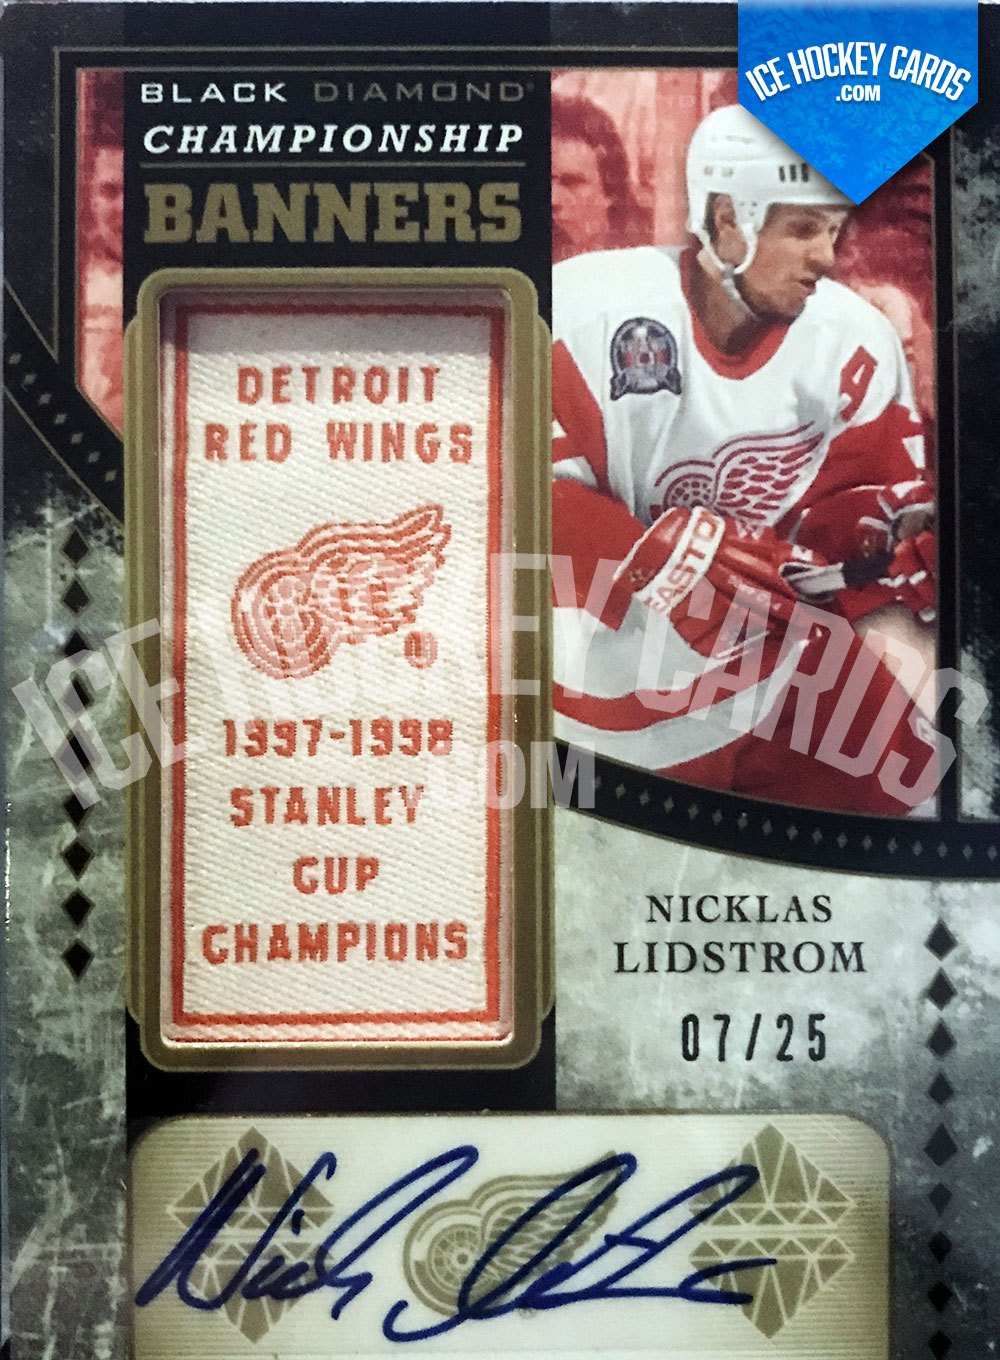 Upper Deck - Black Diamond 19-20 - Nicklas Lidstrom Championship Banners Auto Patch 7 of 25 RARE